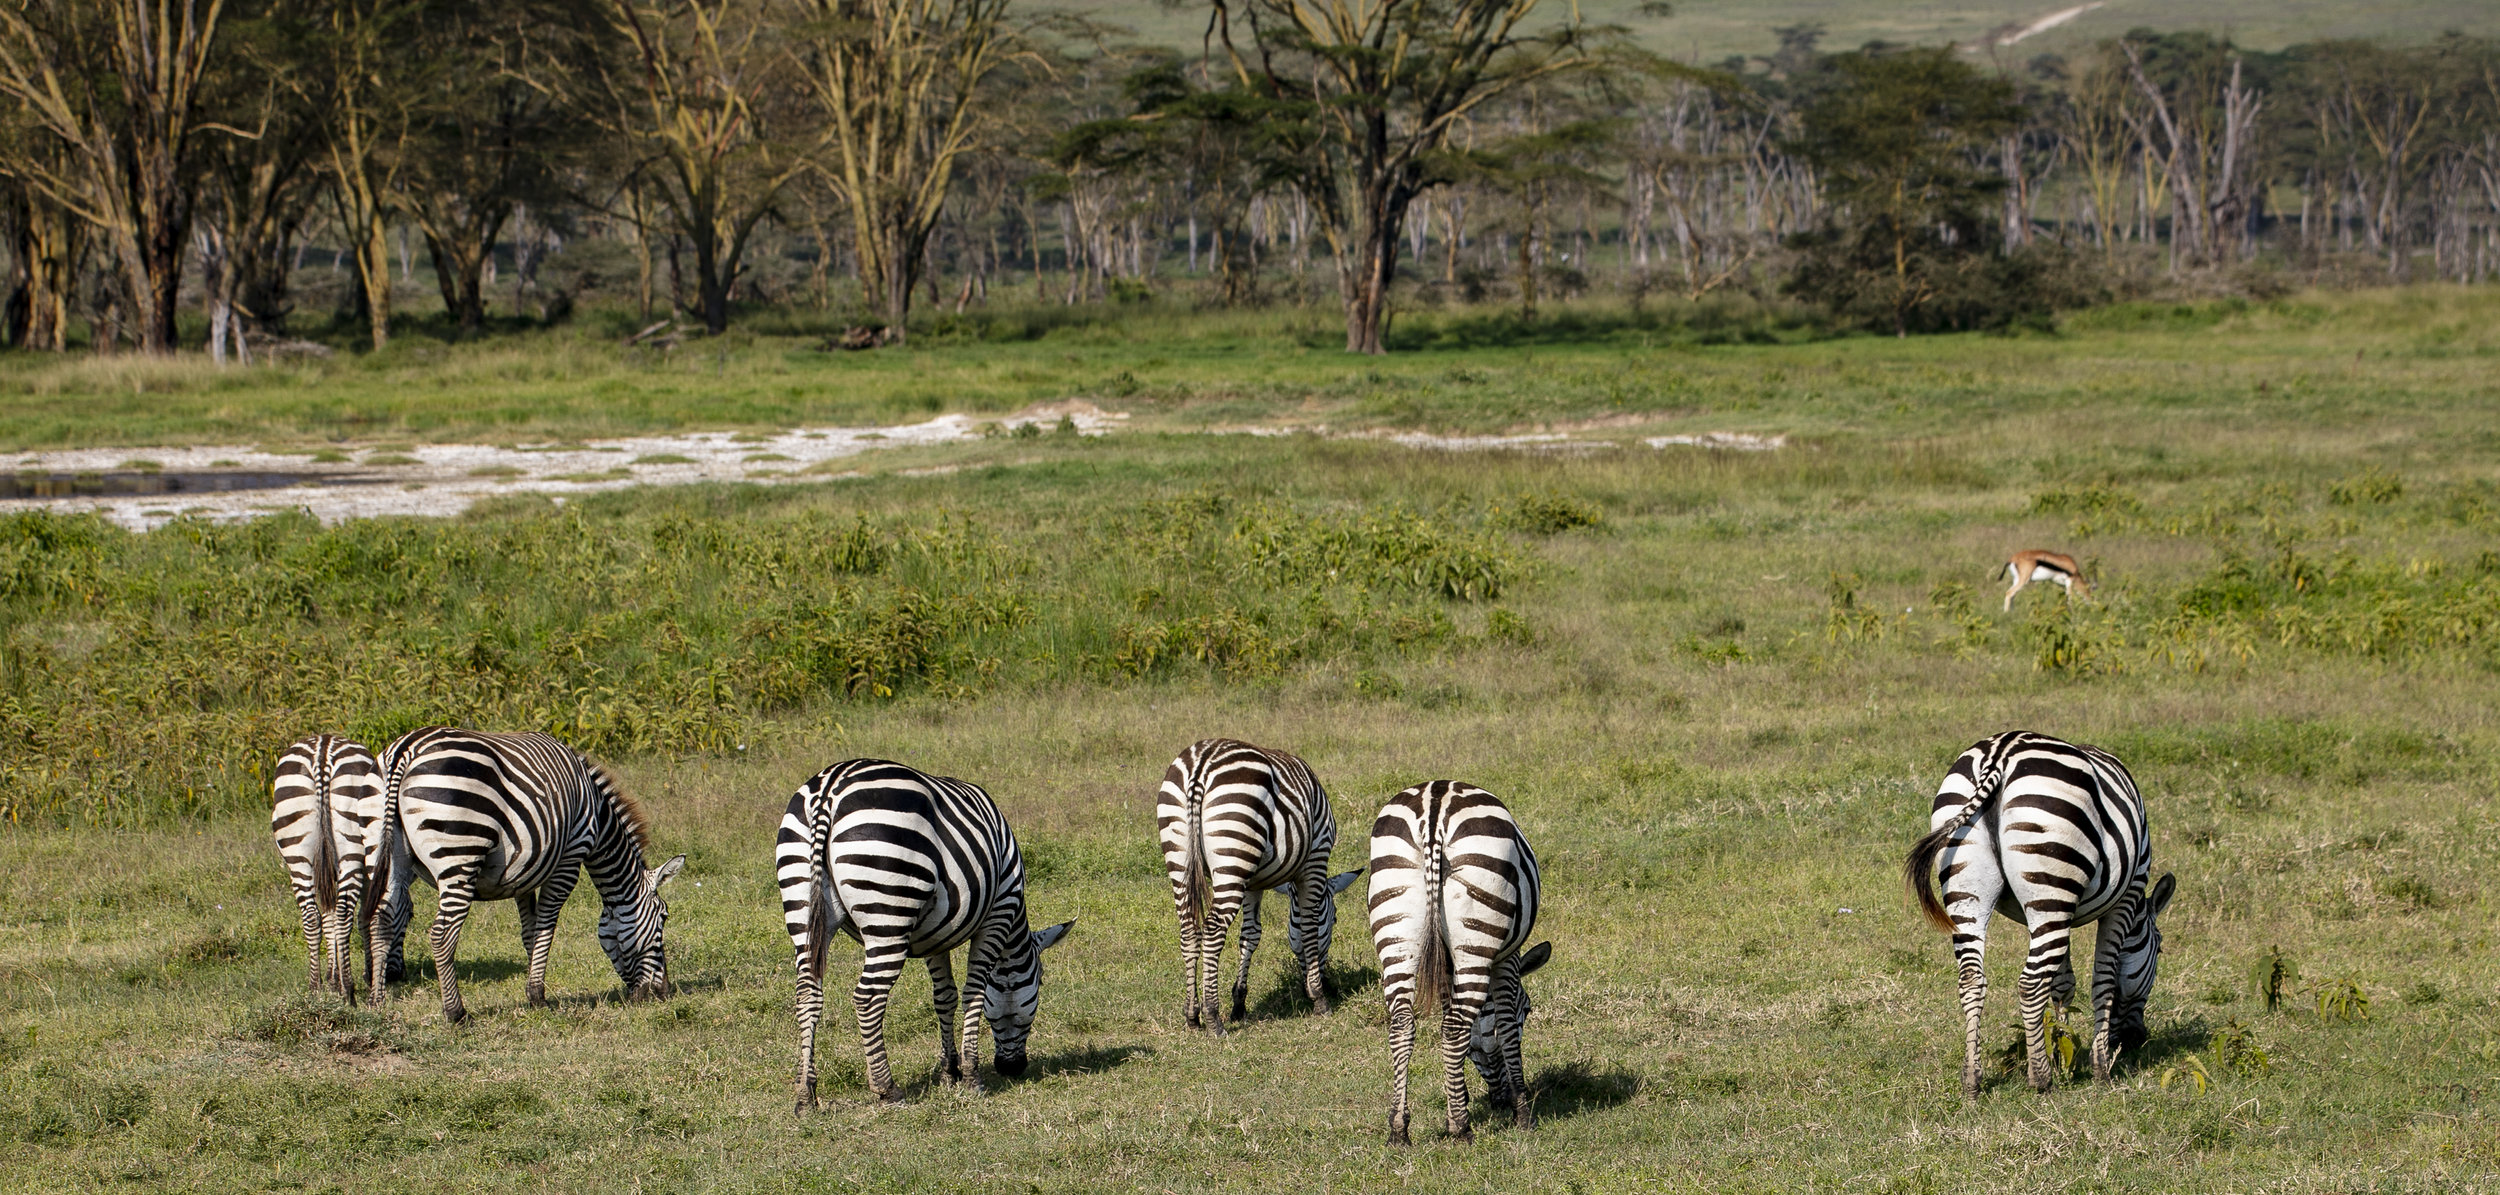 African Adventure - 19 July '18 - Nairobi to Nakuru National Park - 045.JPG